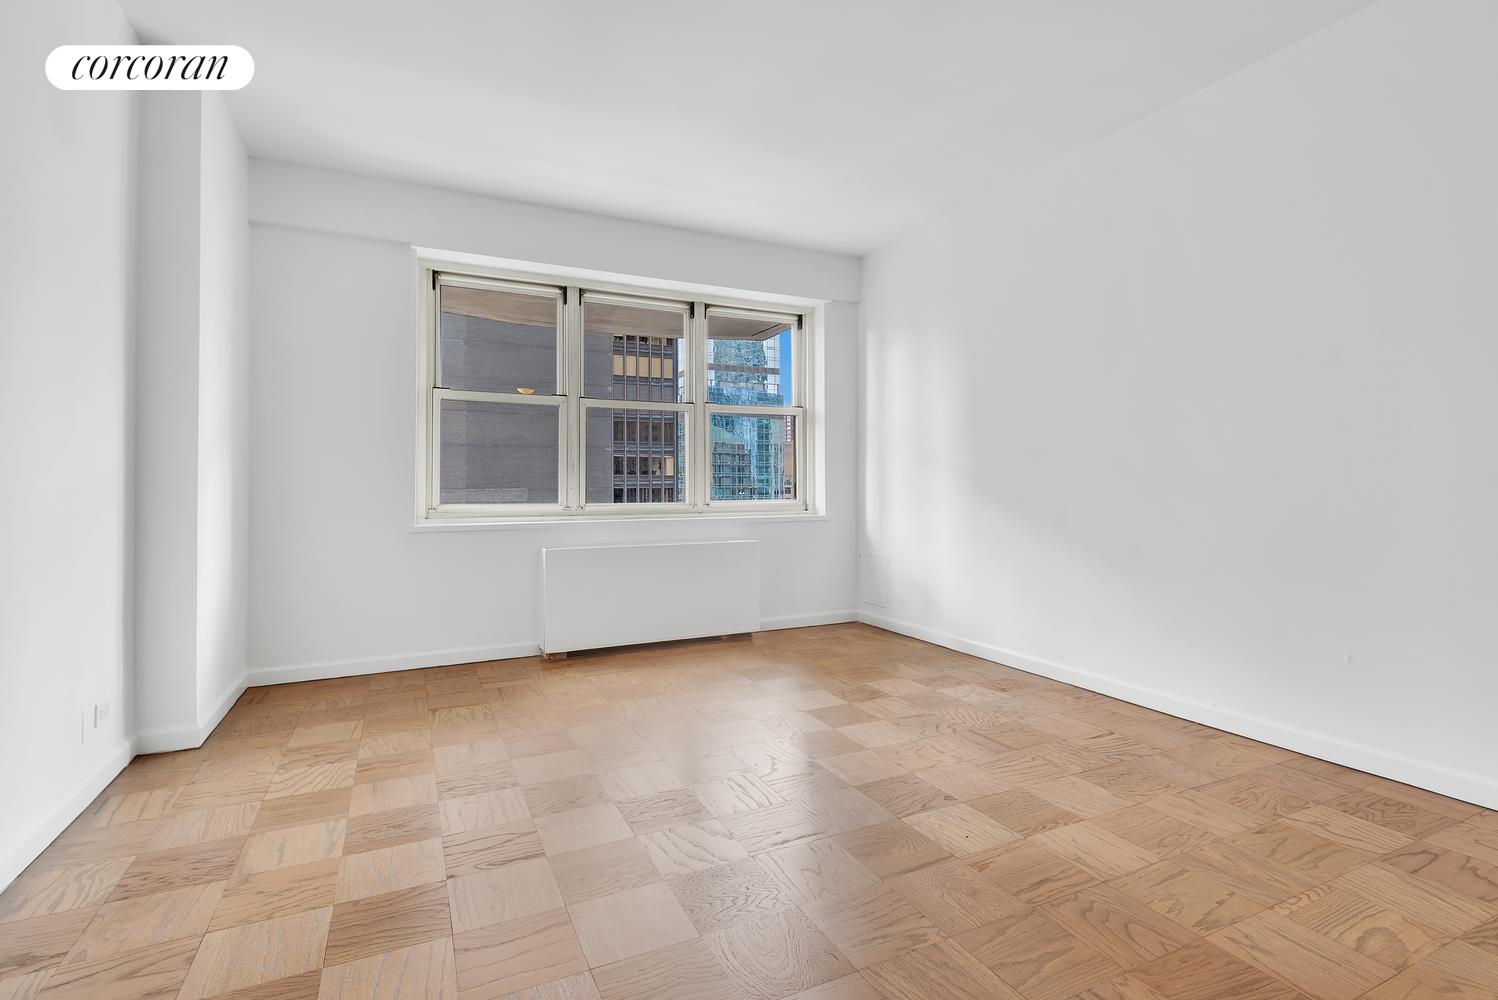 159 West 53rd Street, 31G, No image available